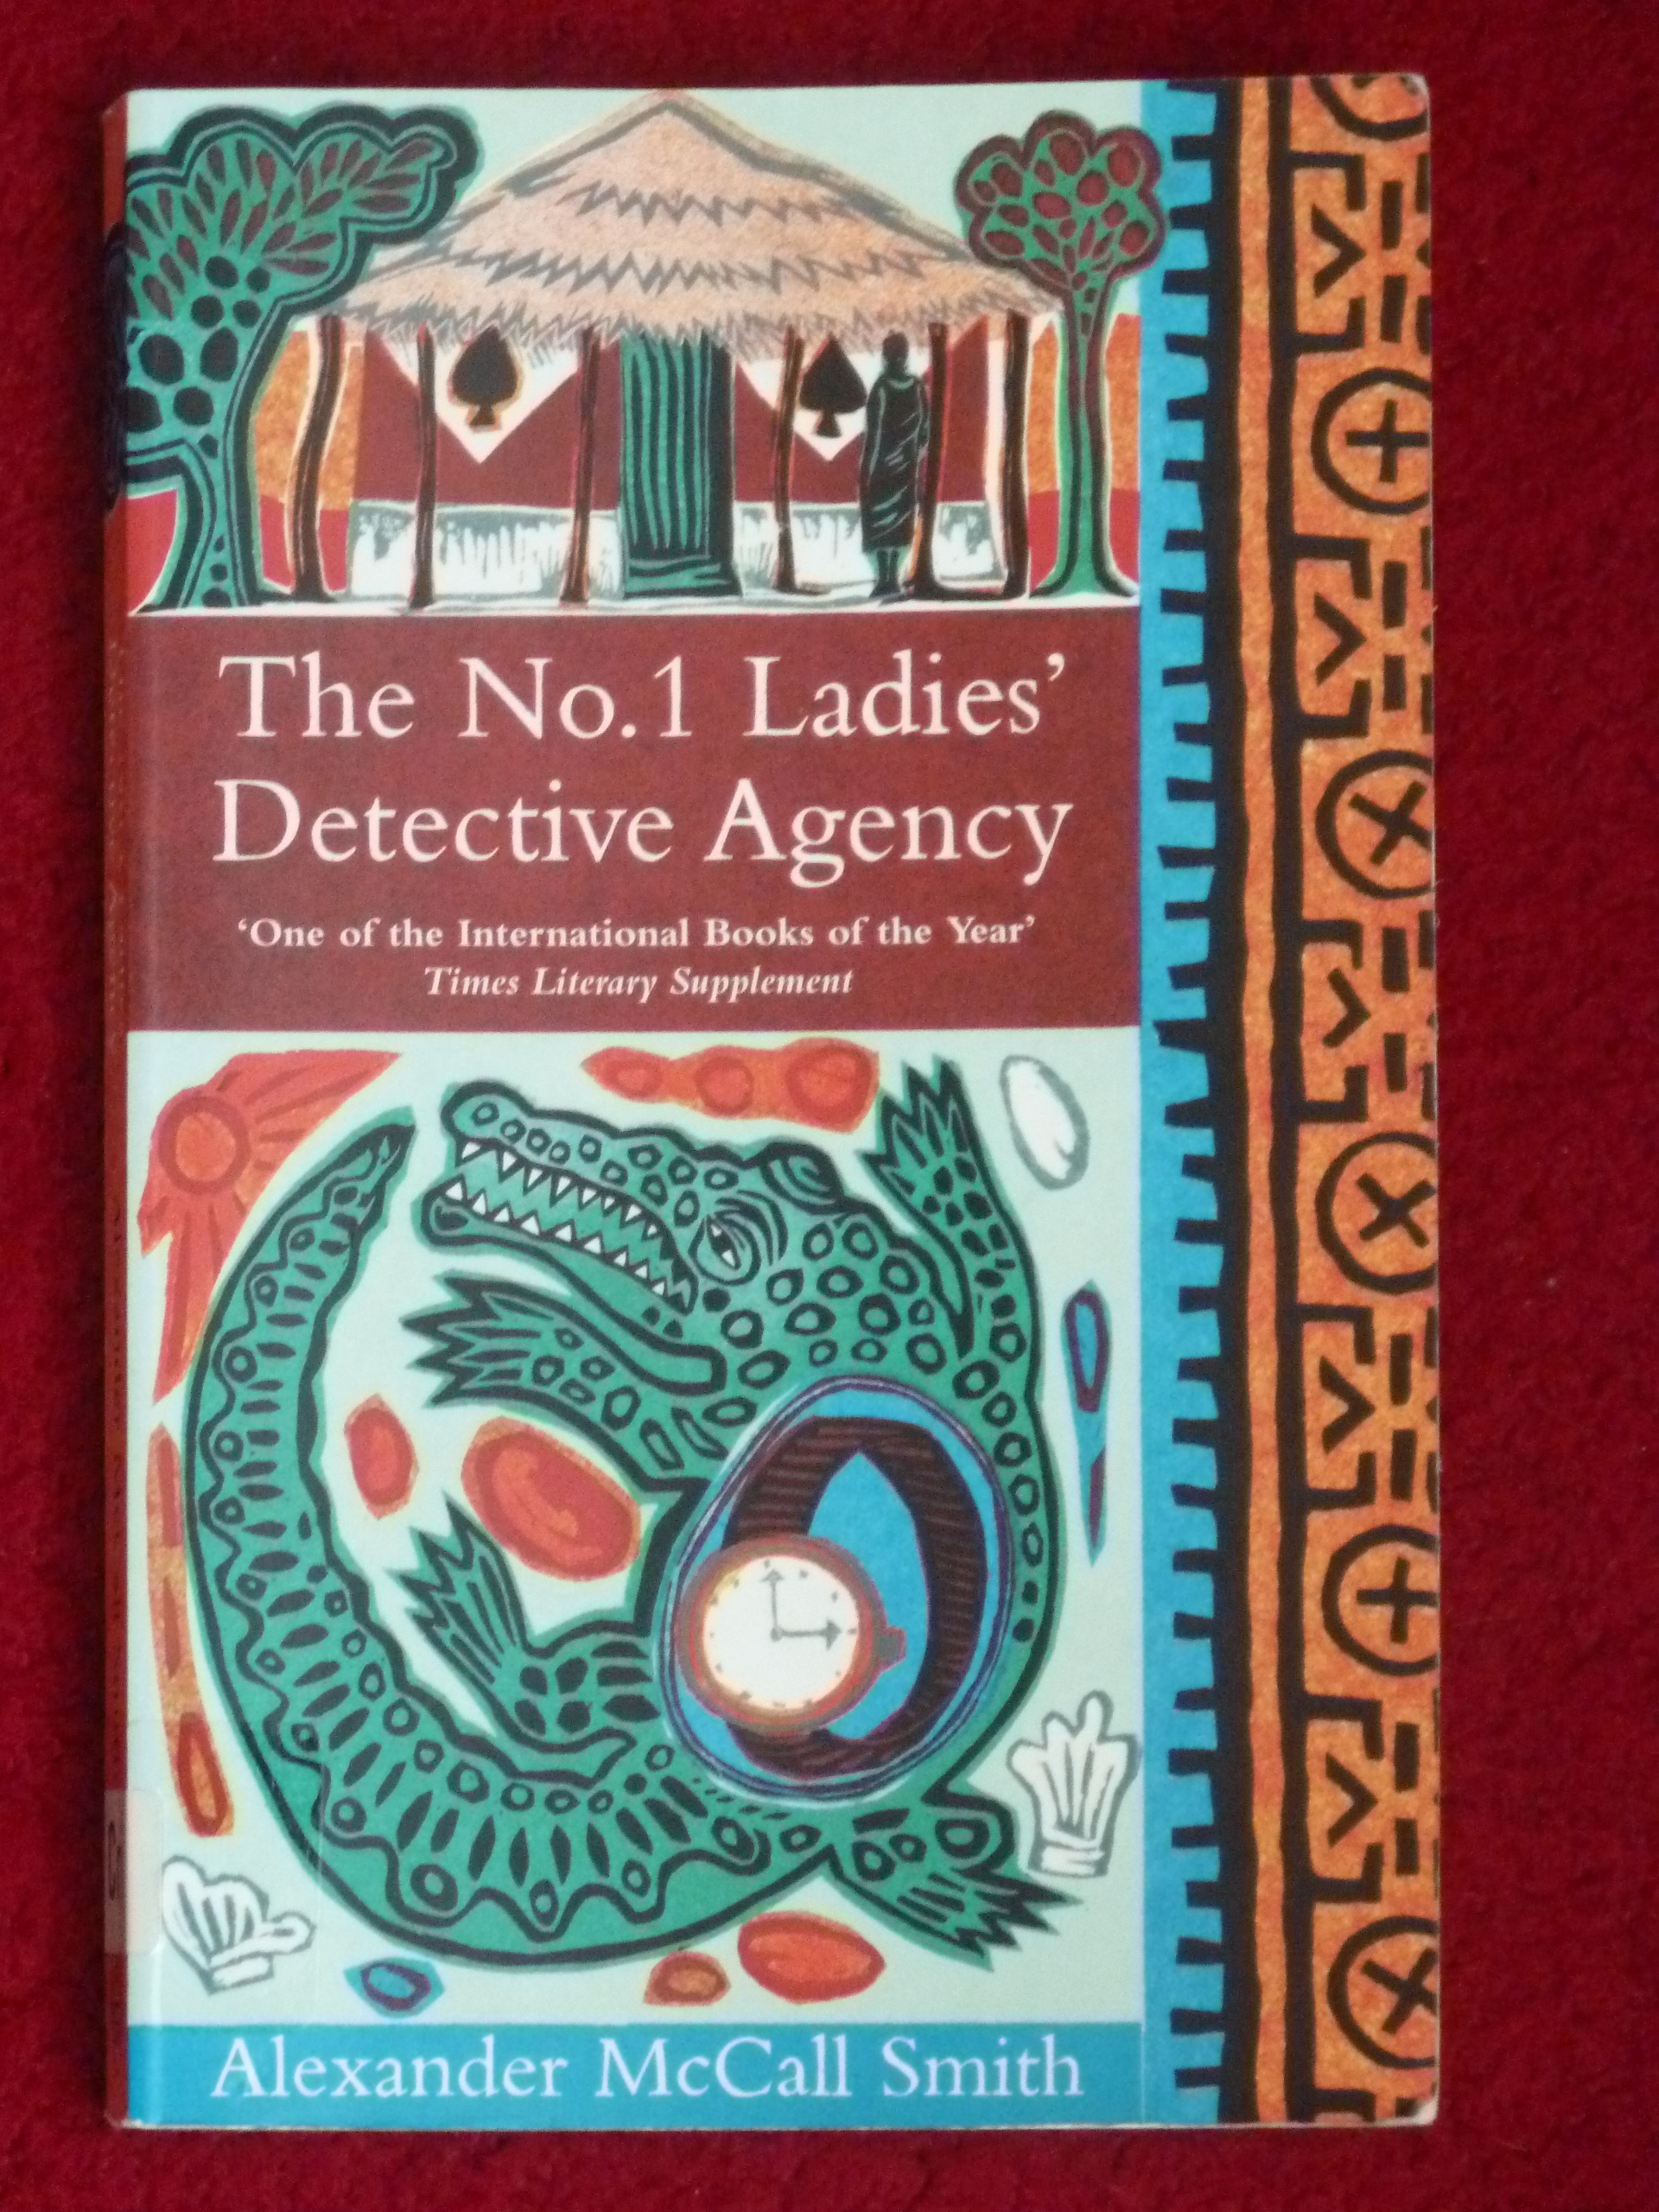 the ladies detective agency The no ladies' detective agency is to television as the secret life of bees is to literature: it's palatable, and great for a beach va.